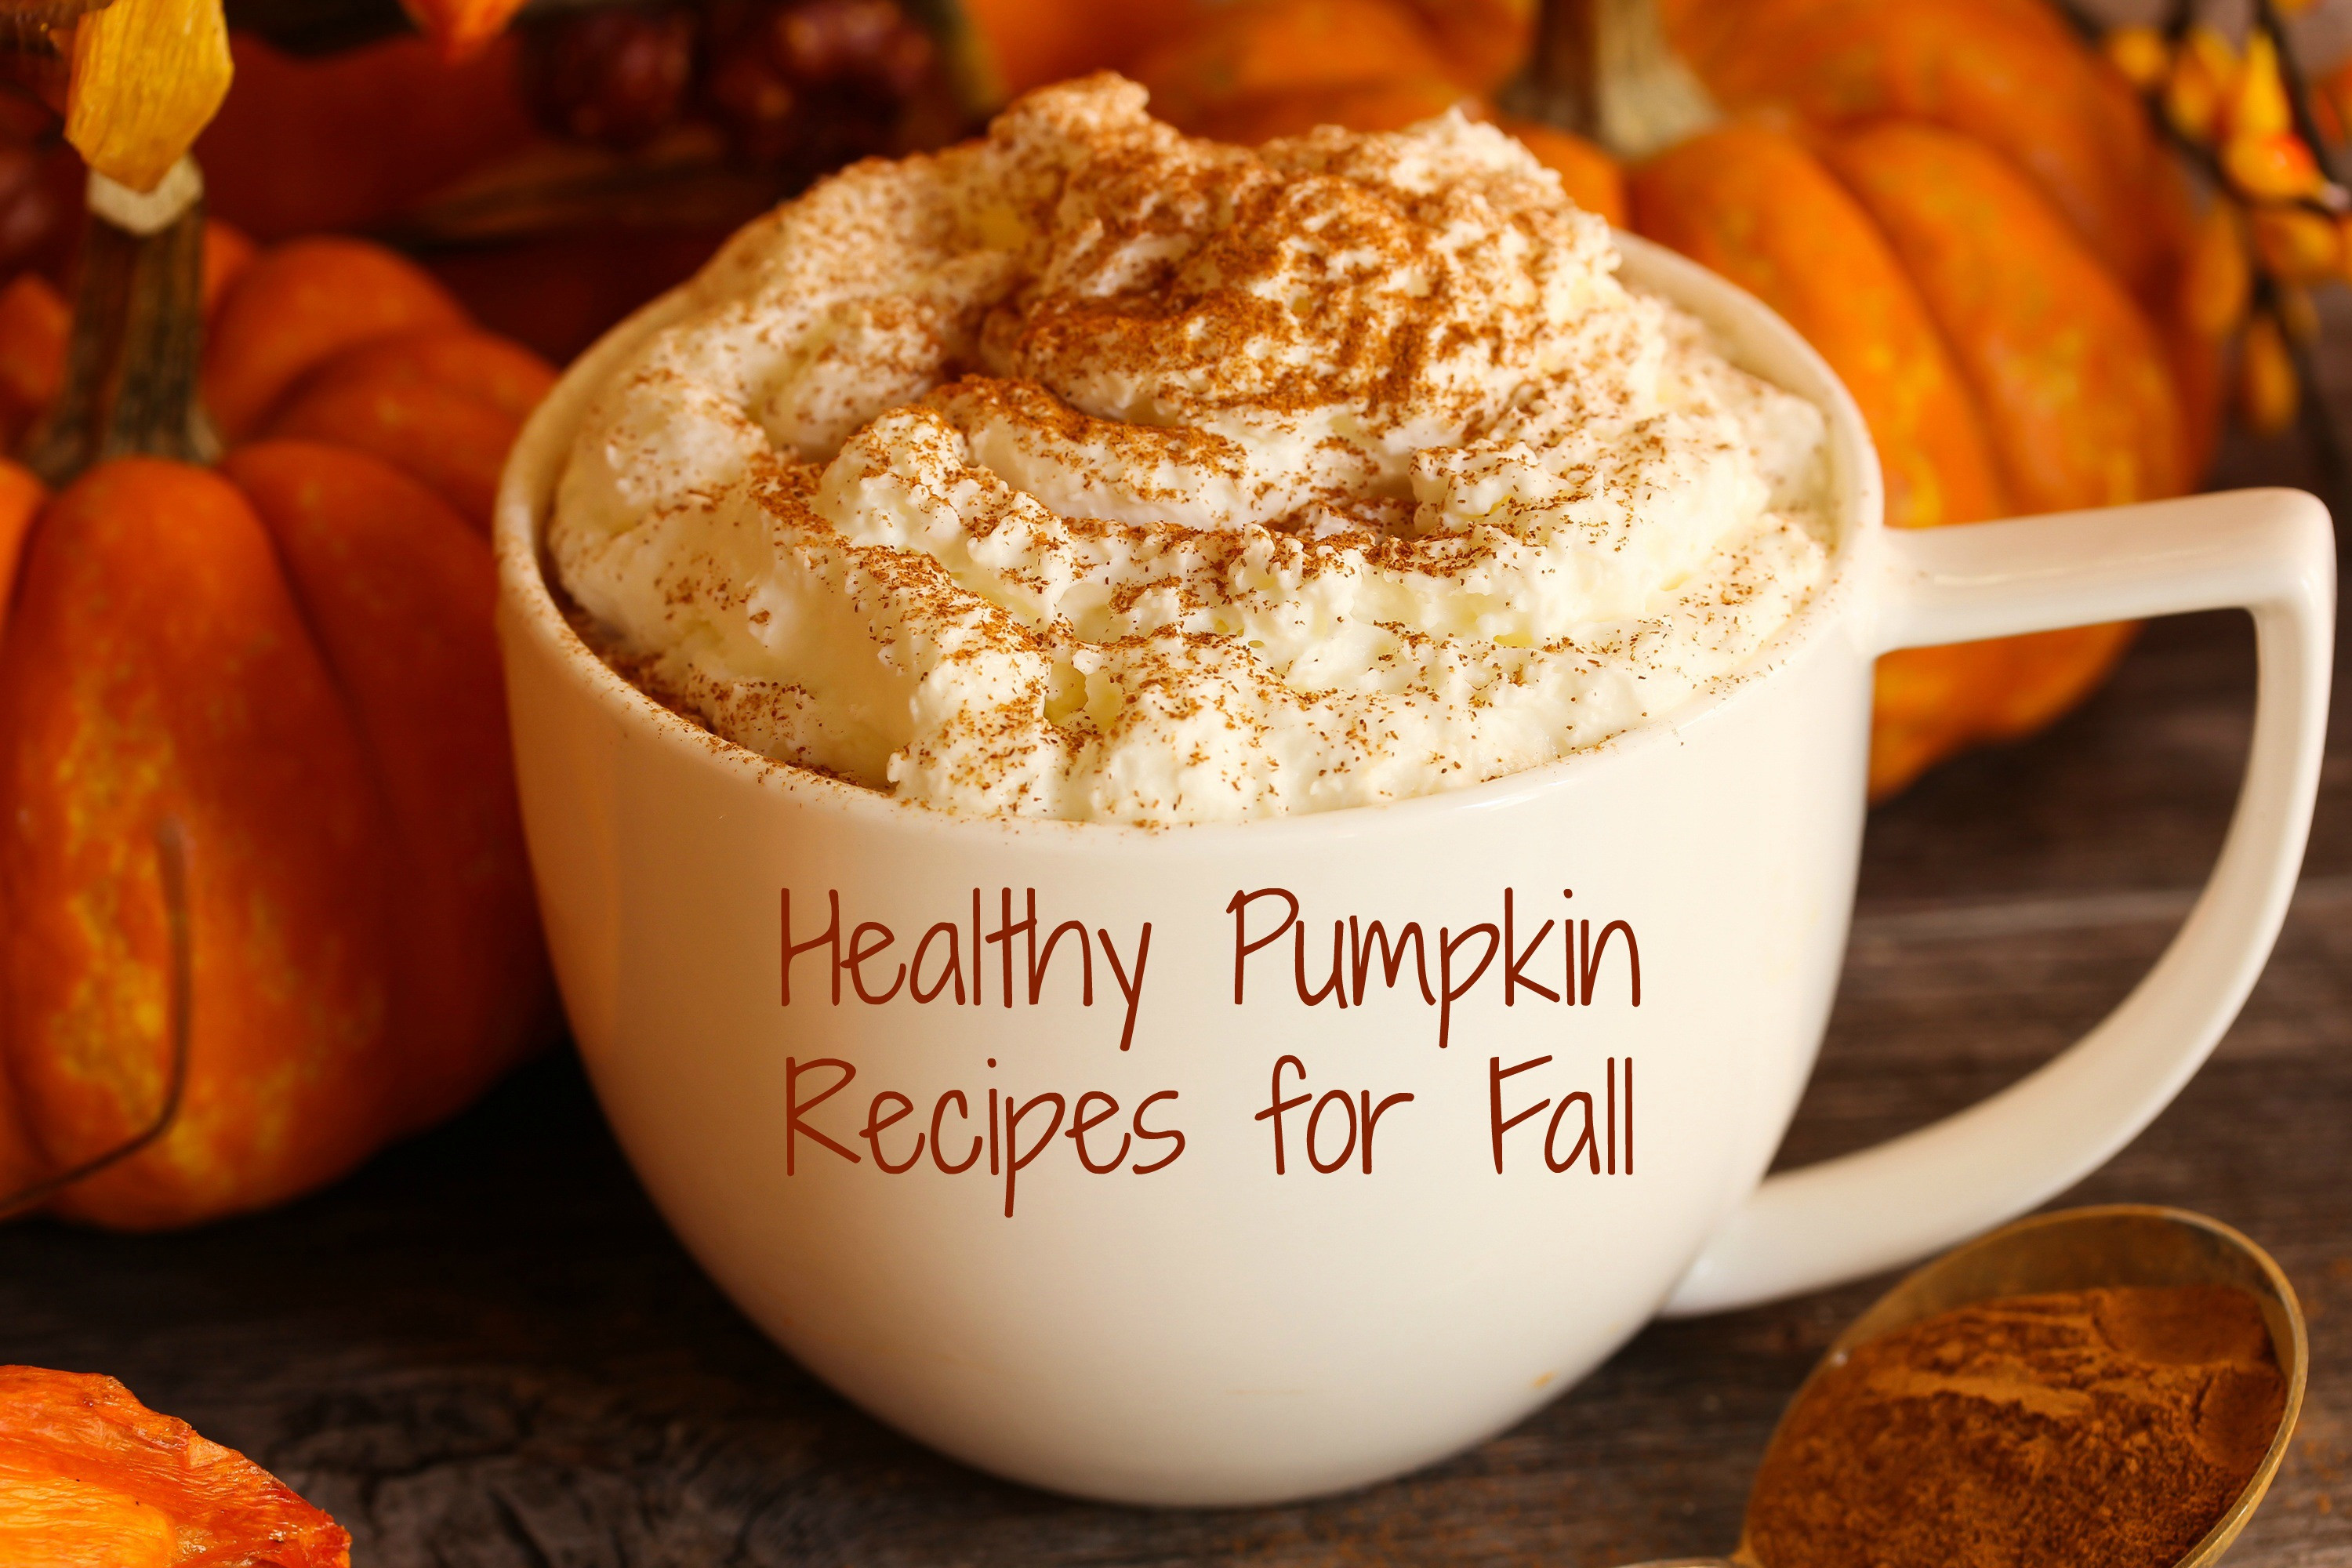 Pumpkin Recipes Healthy  Healthy Pumpkin Recipes for Fall TimeLess Weight Loss Blog